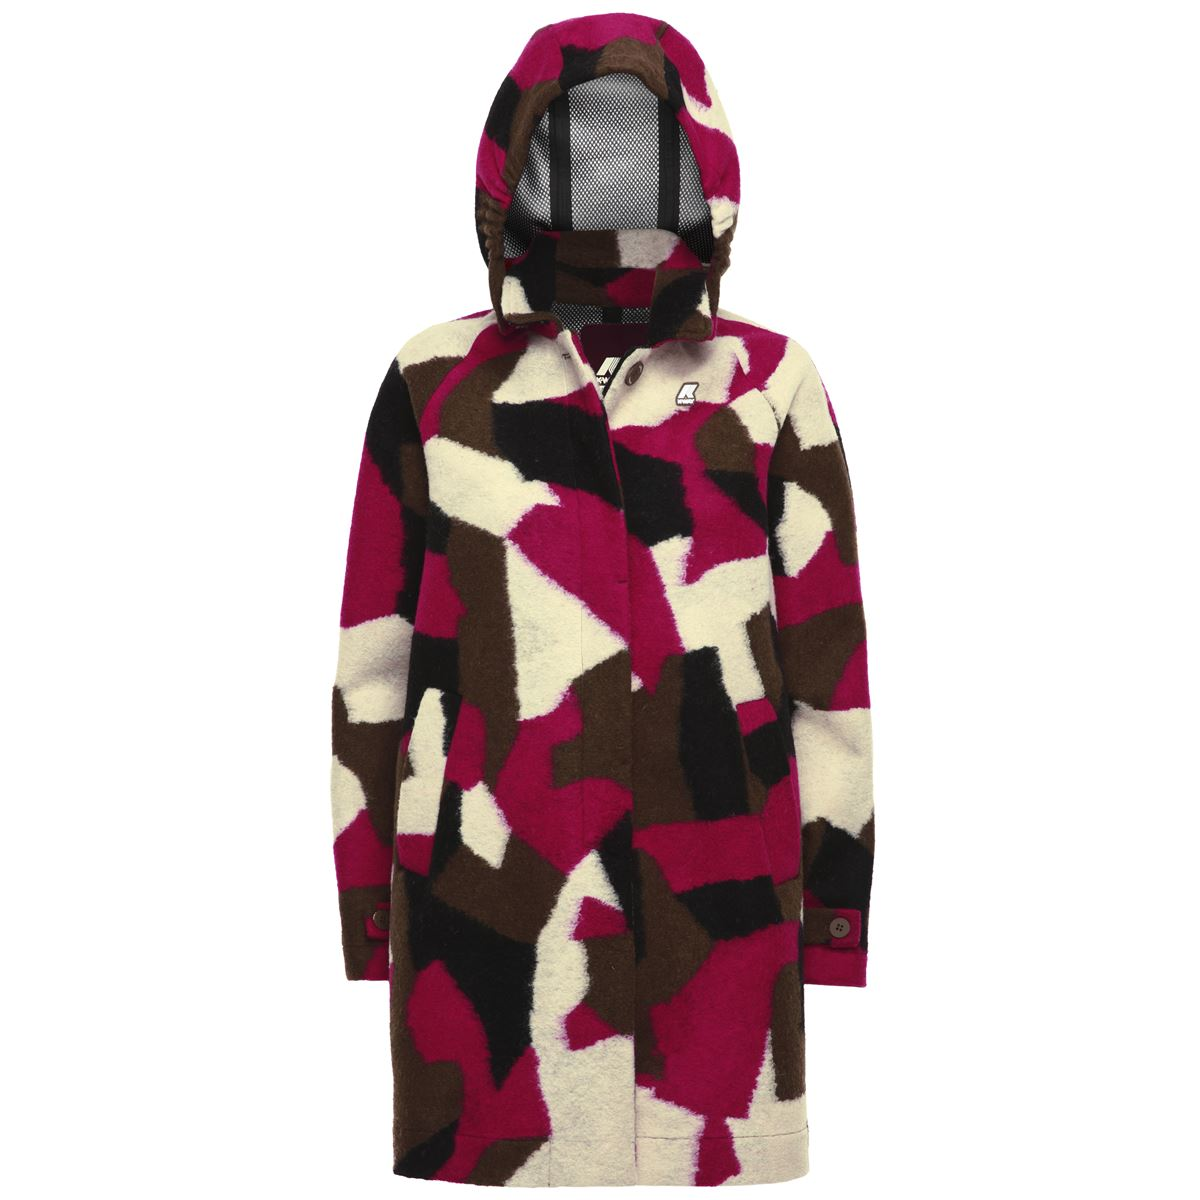 Giubbotto impermeabile K-way donna NOEMIE WOOL 3 LAYER GRAPHIC-K00A5J0